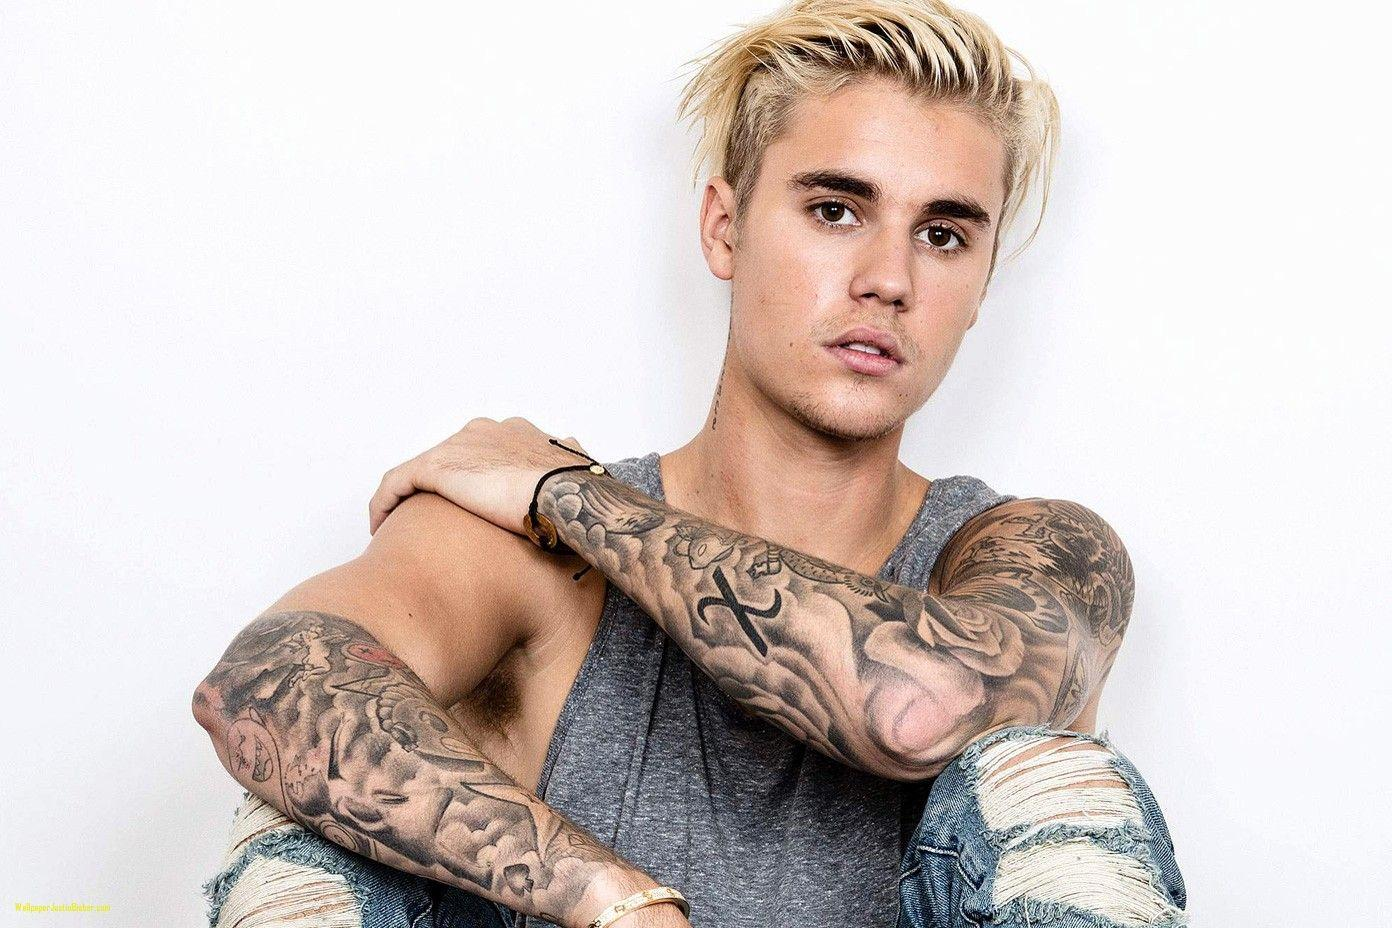 Justin Bieber 2018 Wallpapers - Wallpaper Cave